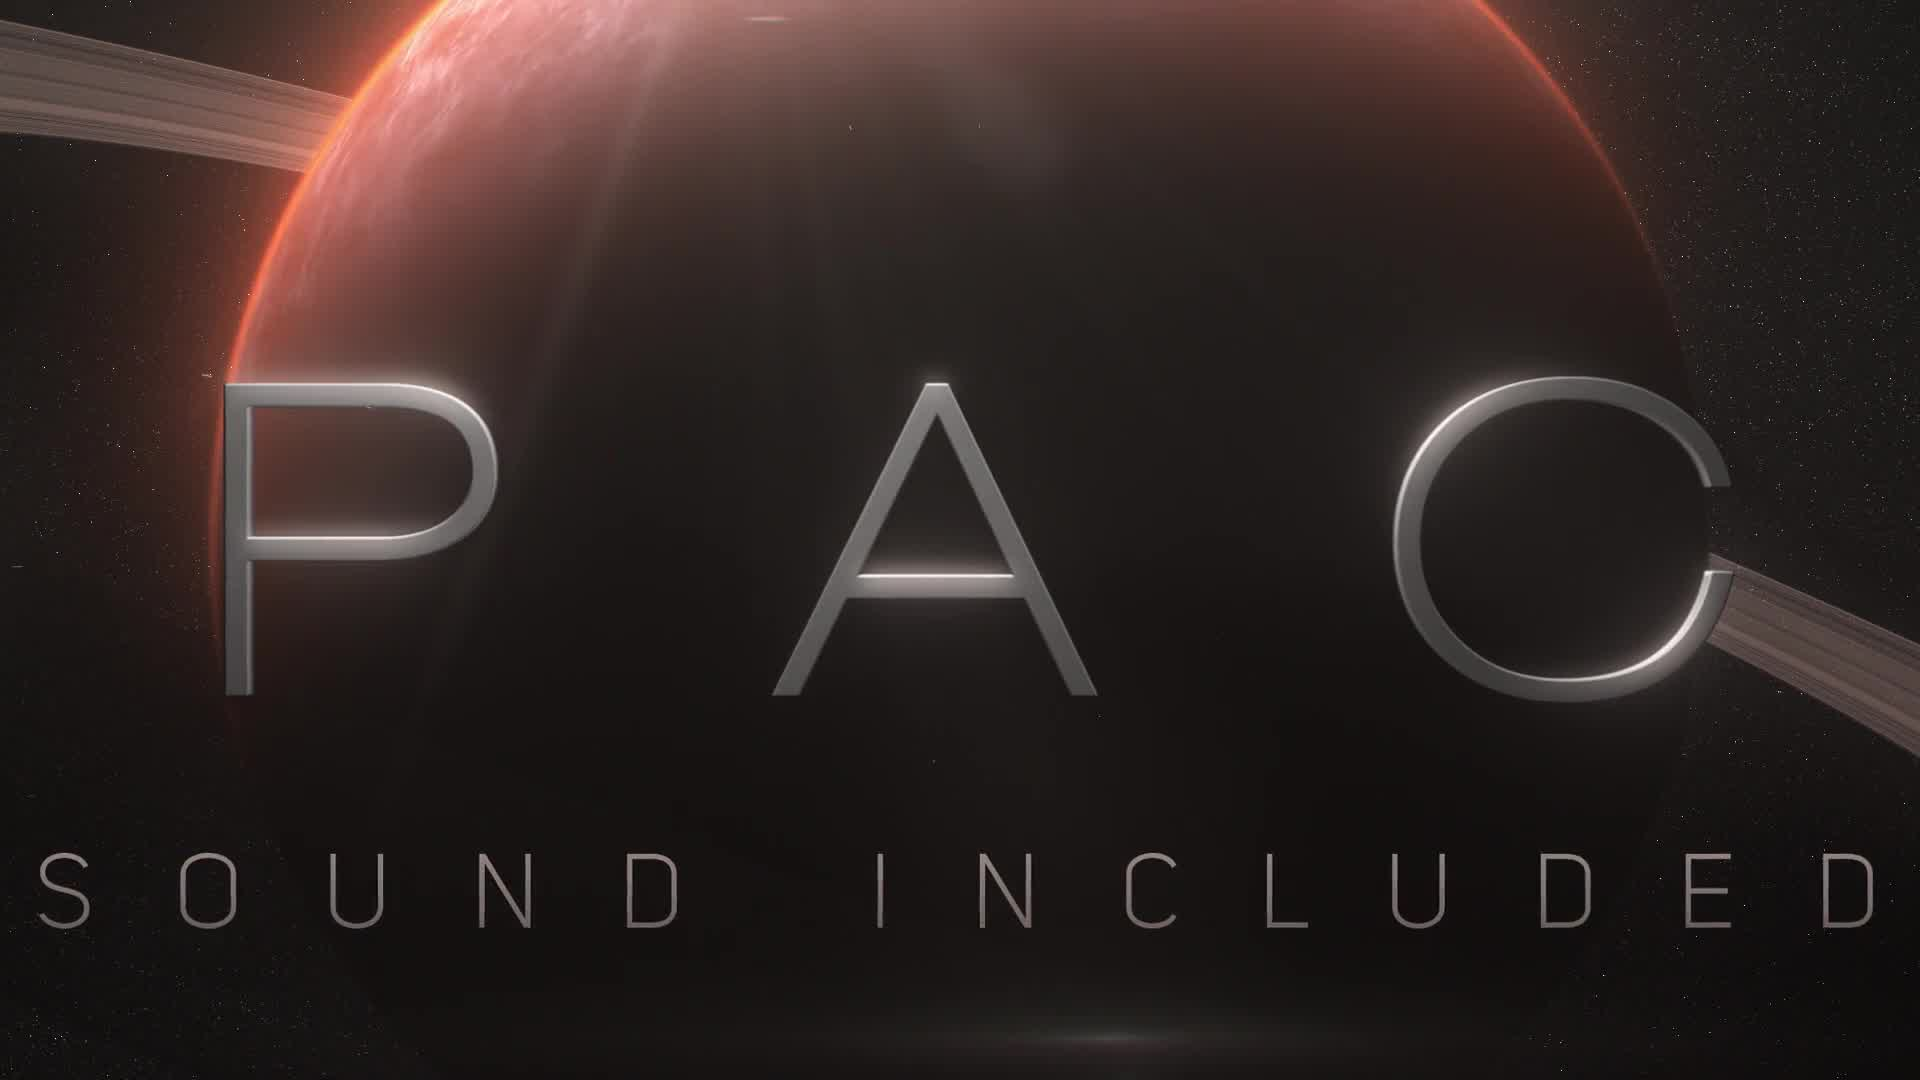 Planet Logo Title Reveal Videohive 20869322 After Effects Image 10